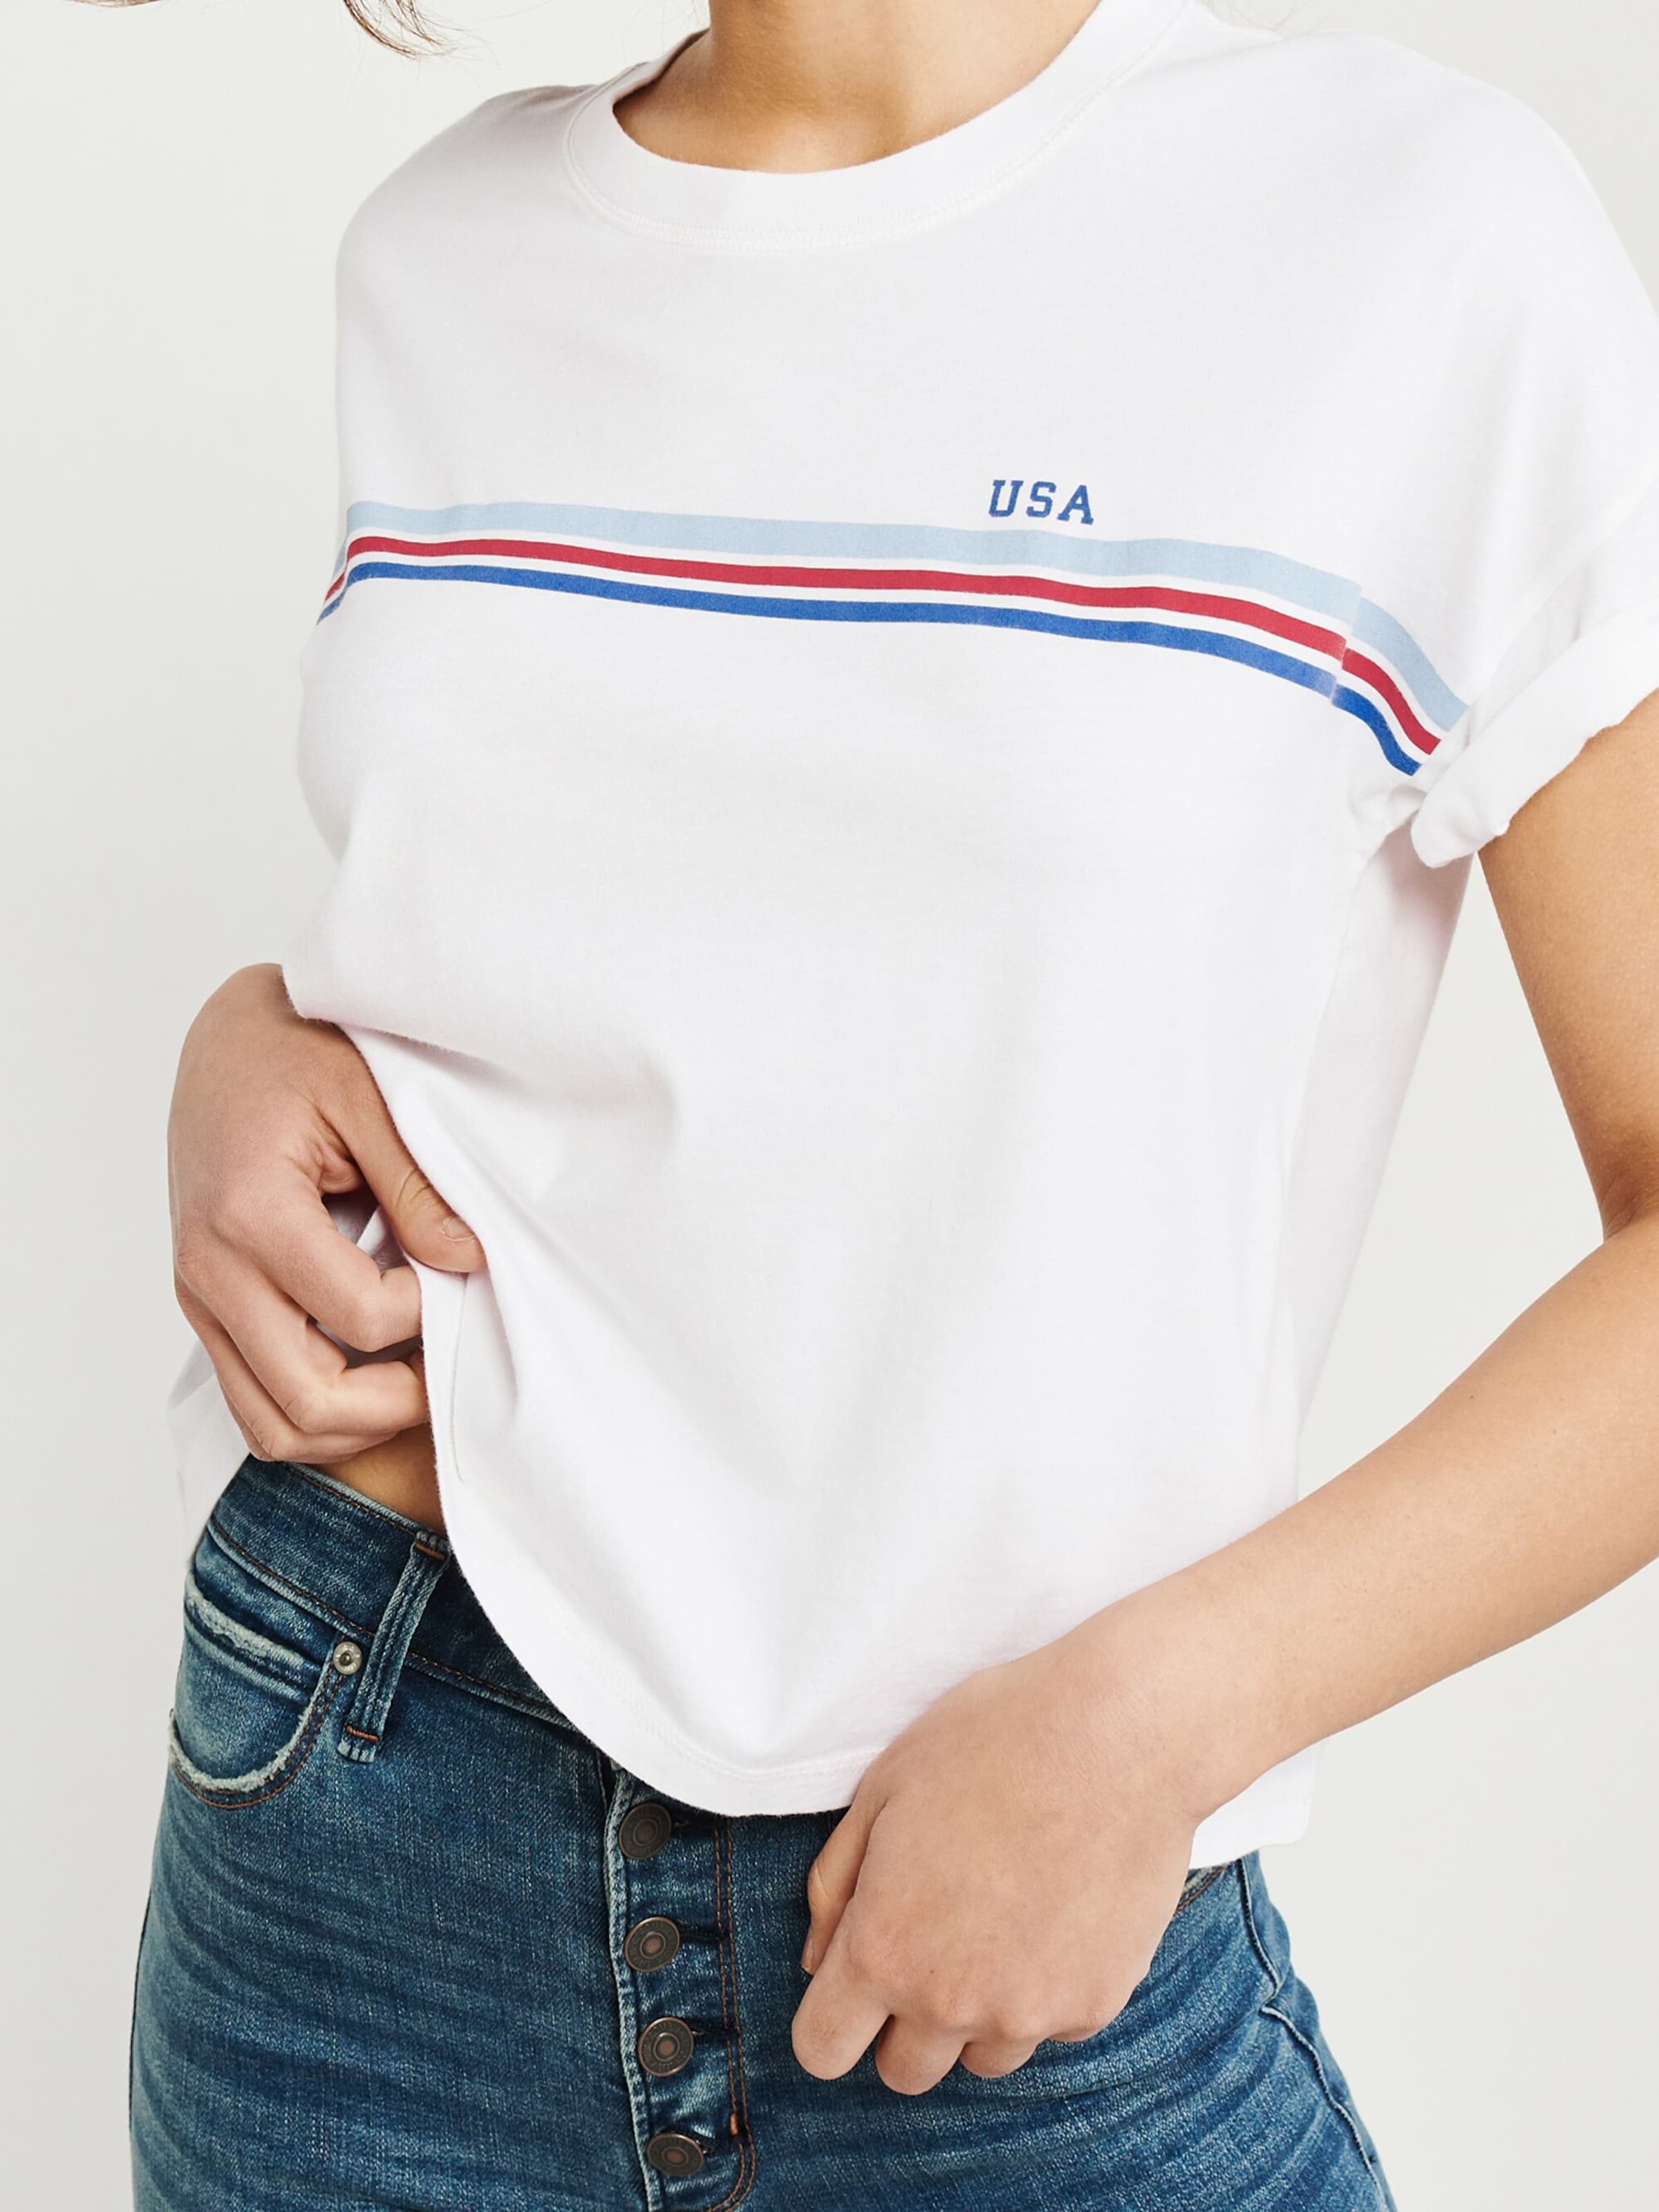 In Fitch BlauRot Abercrombieamp; Shirt 'boxy Americana' Weiß bfY76gy